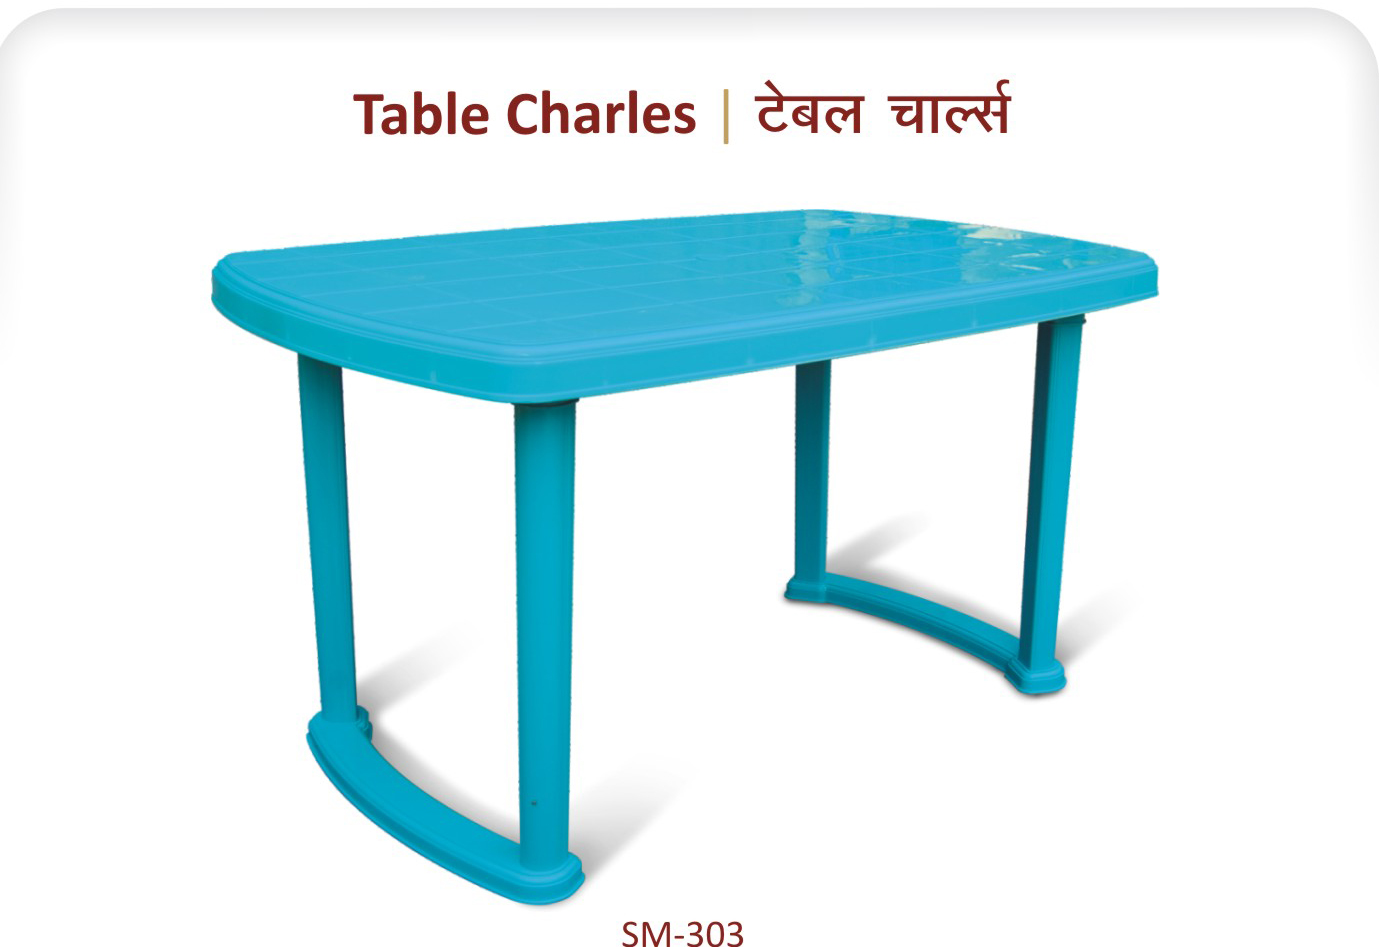 Table Charles